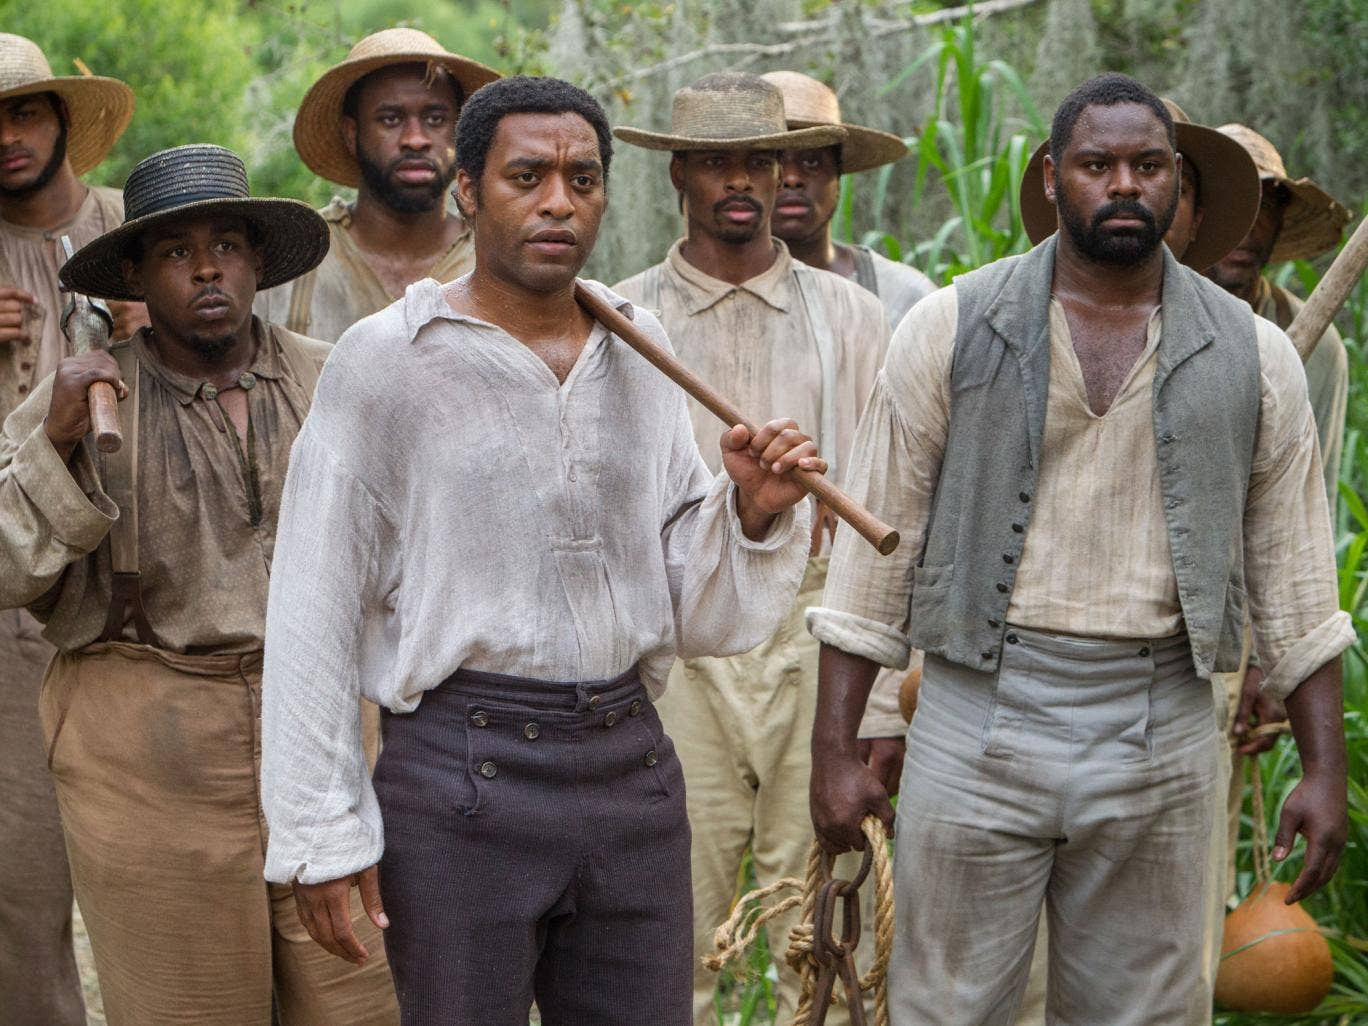 12 Years A Slave will be shown to Indian audiences without edits after the censor board allowed full-frontal nudity shots to remain